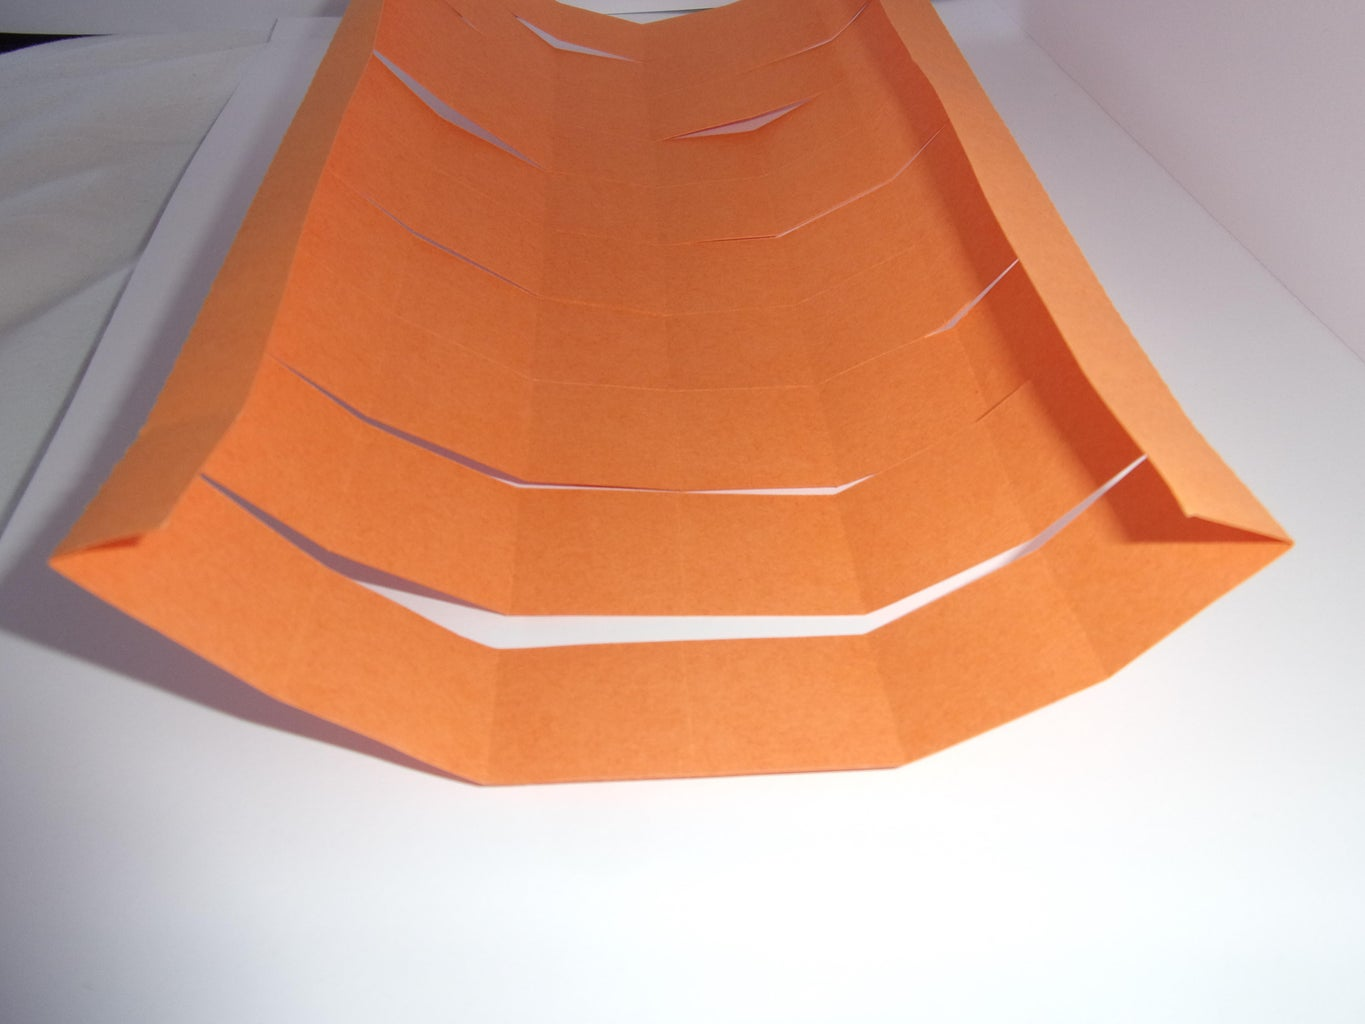 Fold Top and Bottom Edges